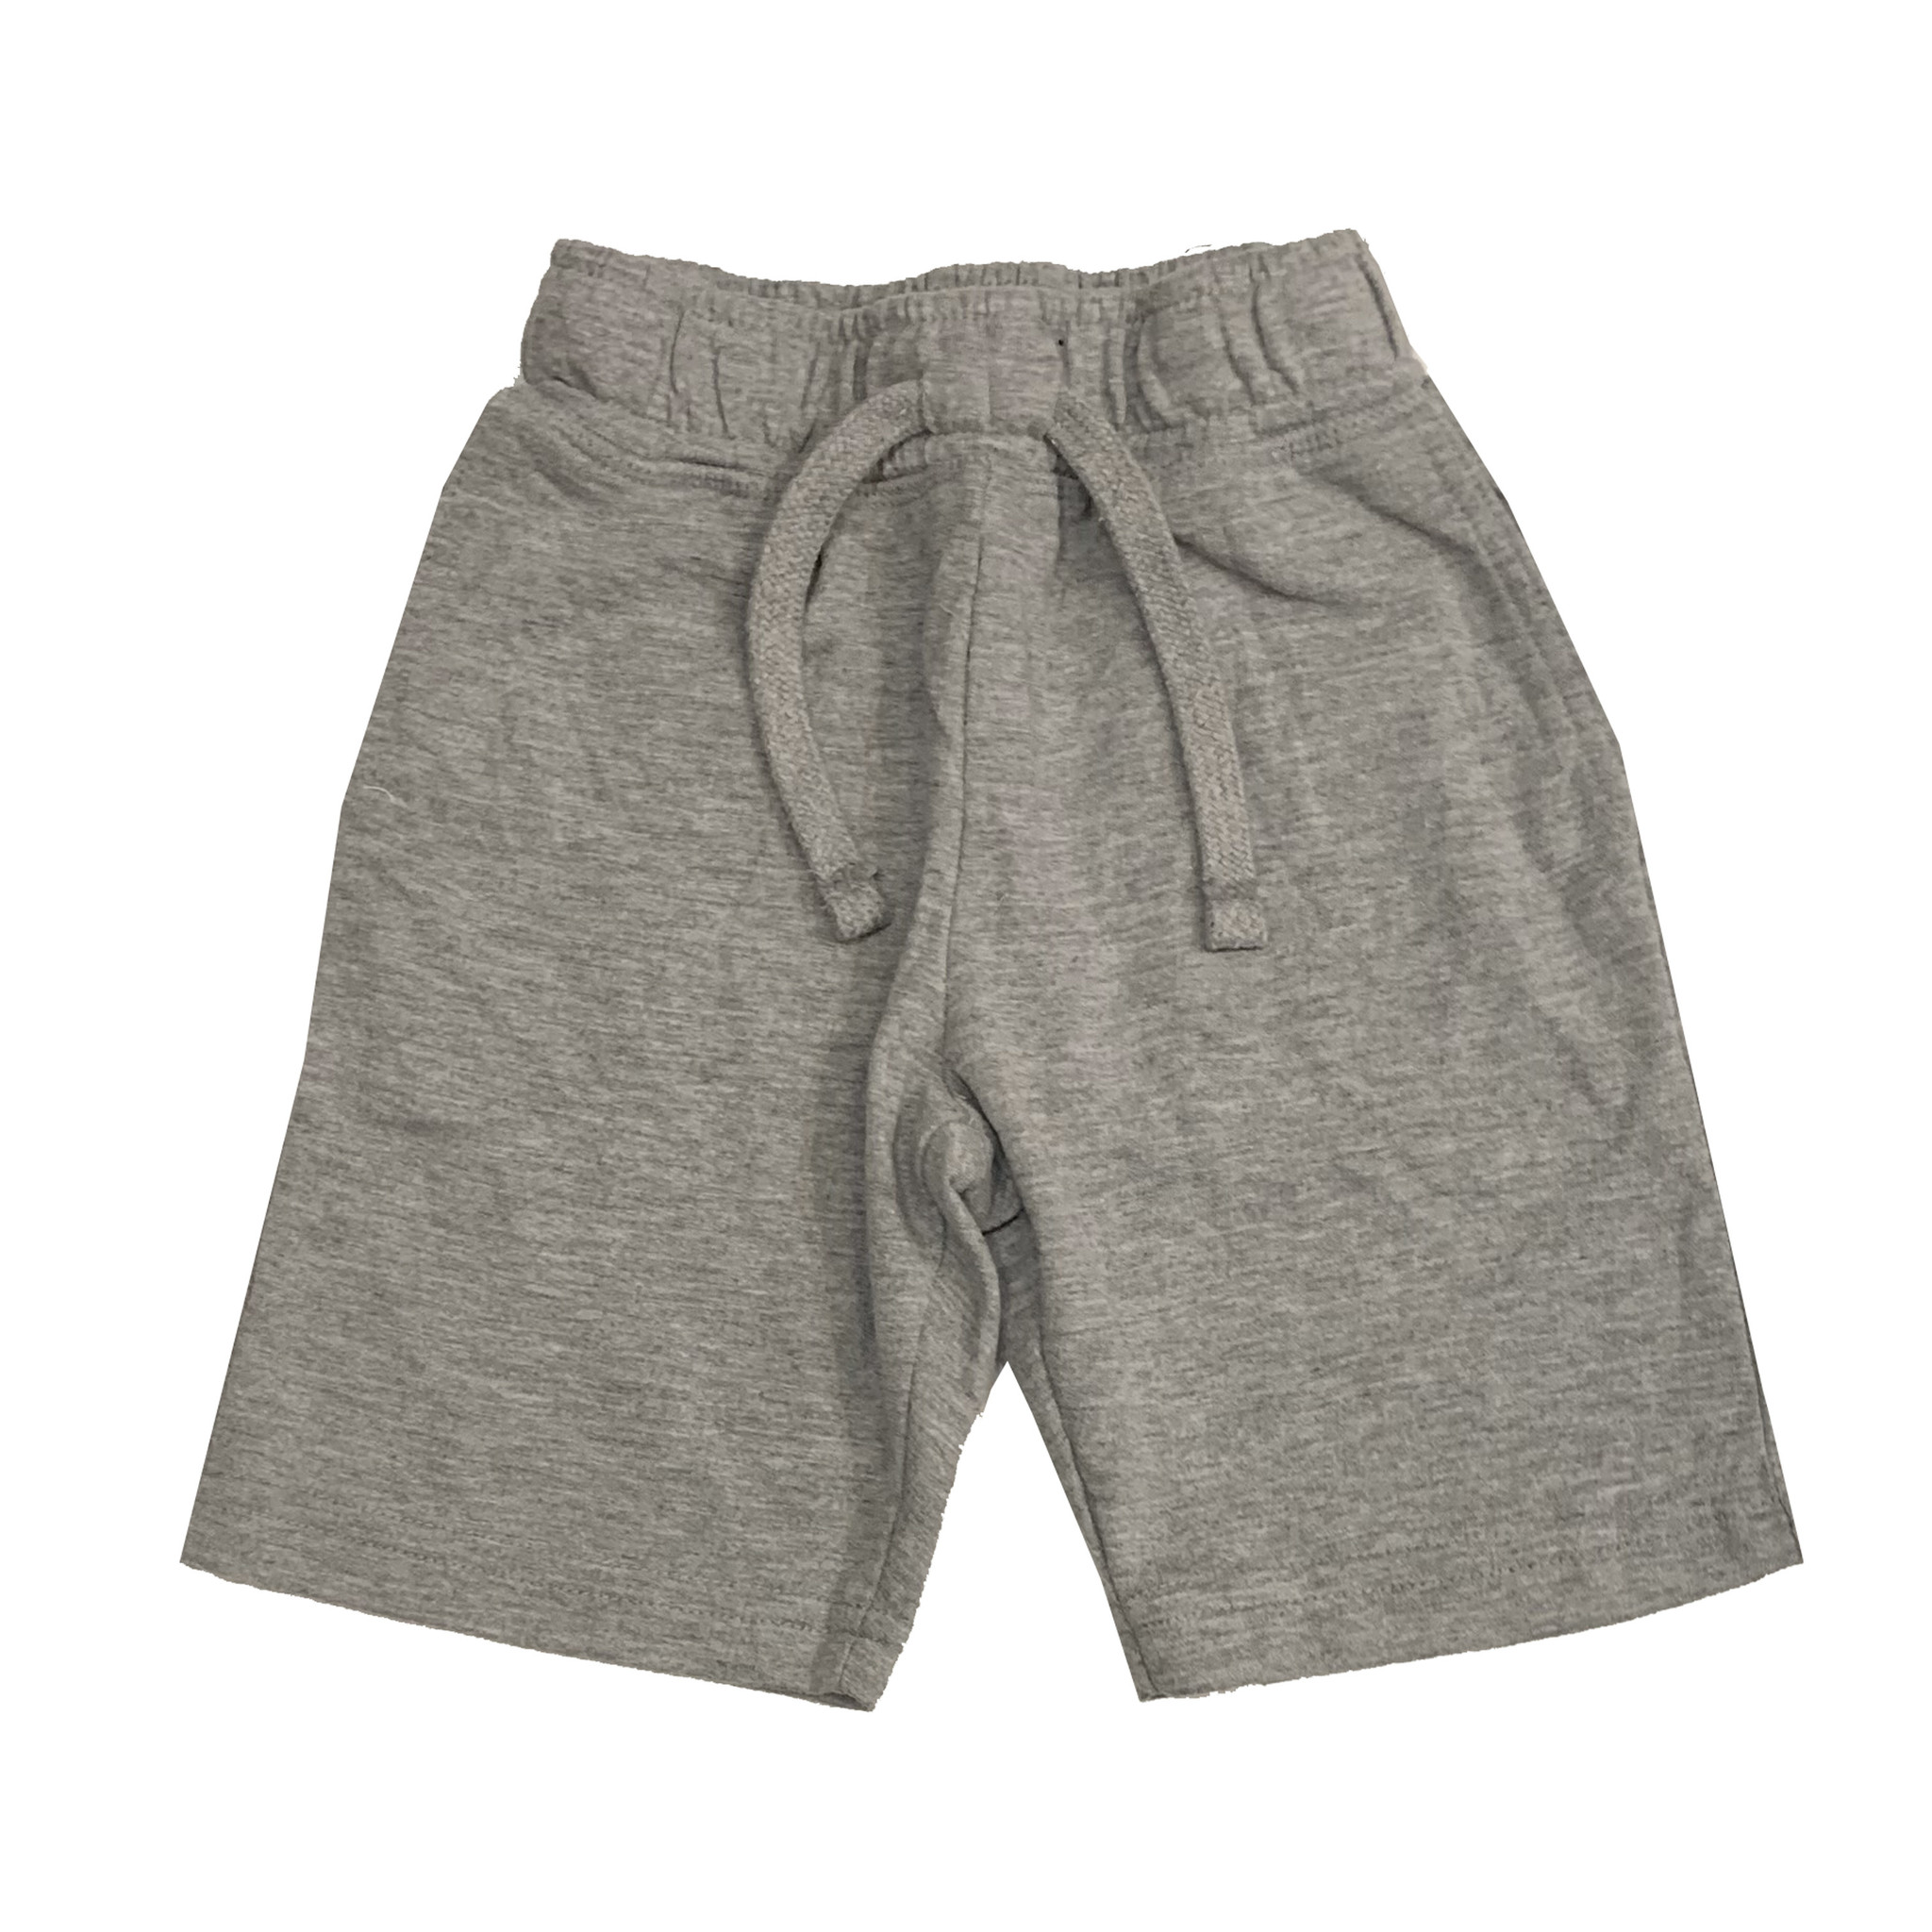 Mish Distressed Grey Basic Short